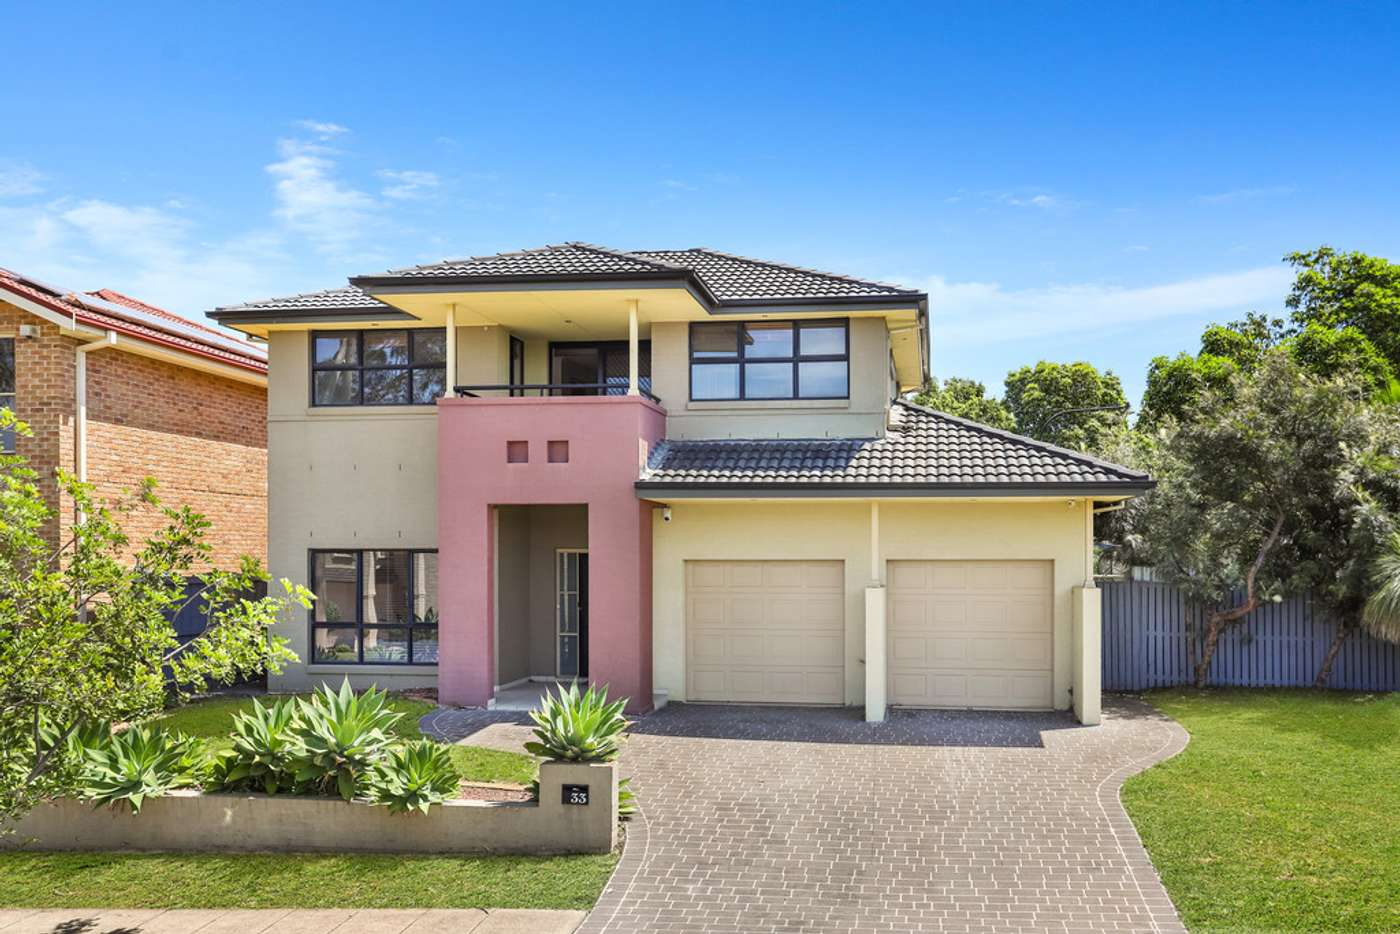 Main view of Homely house listing, 33 Darlington Street, Stanhope Gardens NSW 2768